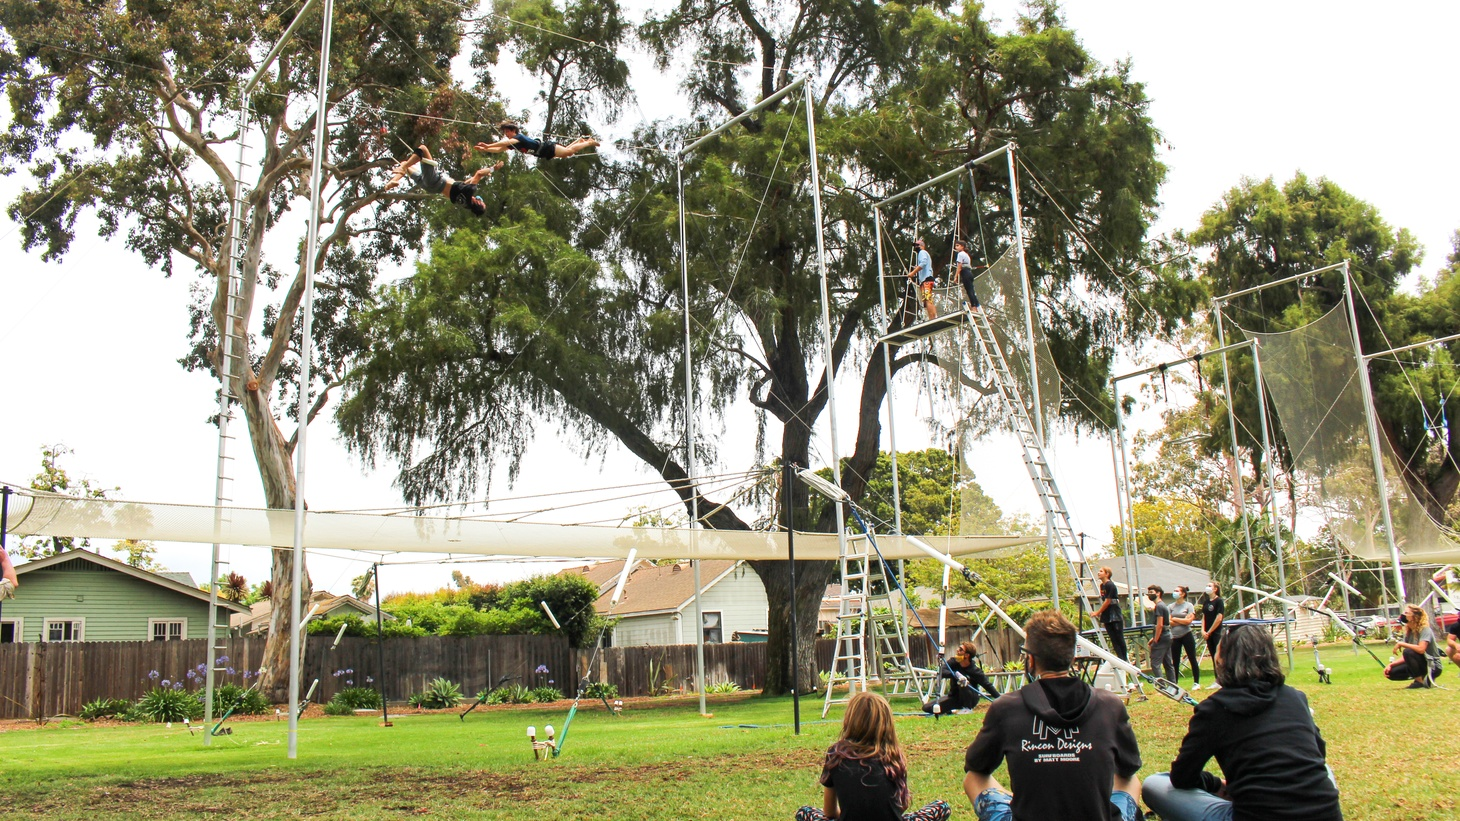 Two trapeze sets in Plaza Vera Cruz, a public park in Santa Barbara, are the latest examples of a thriving aerial arts community.